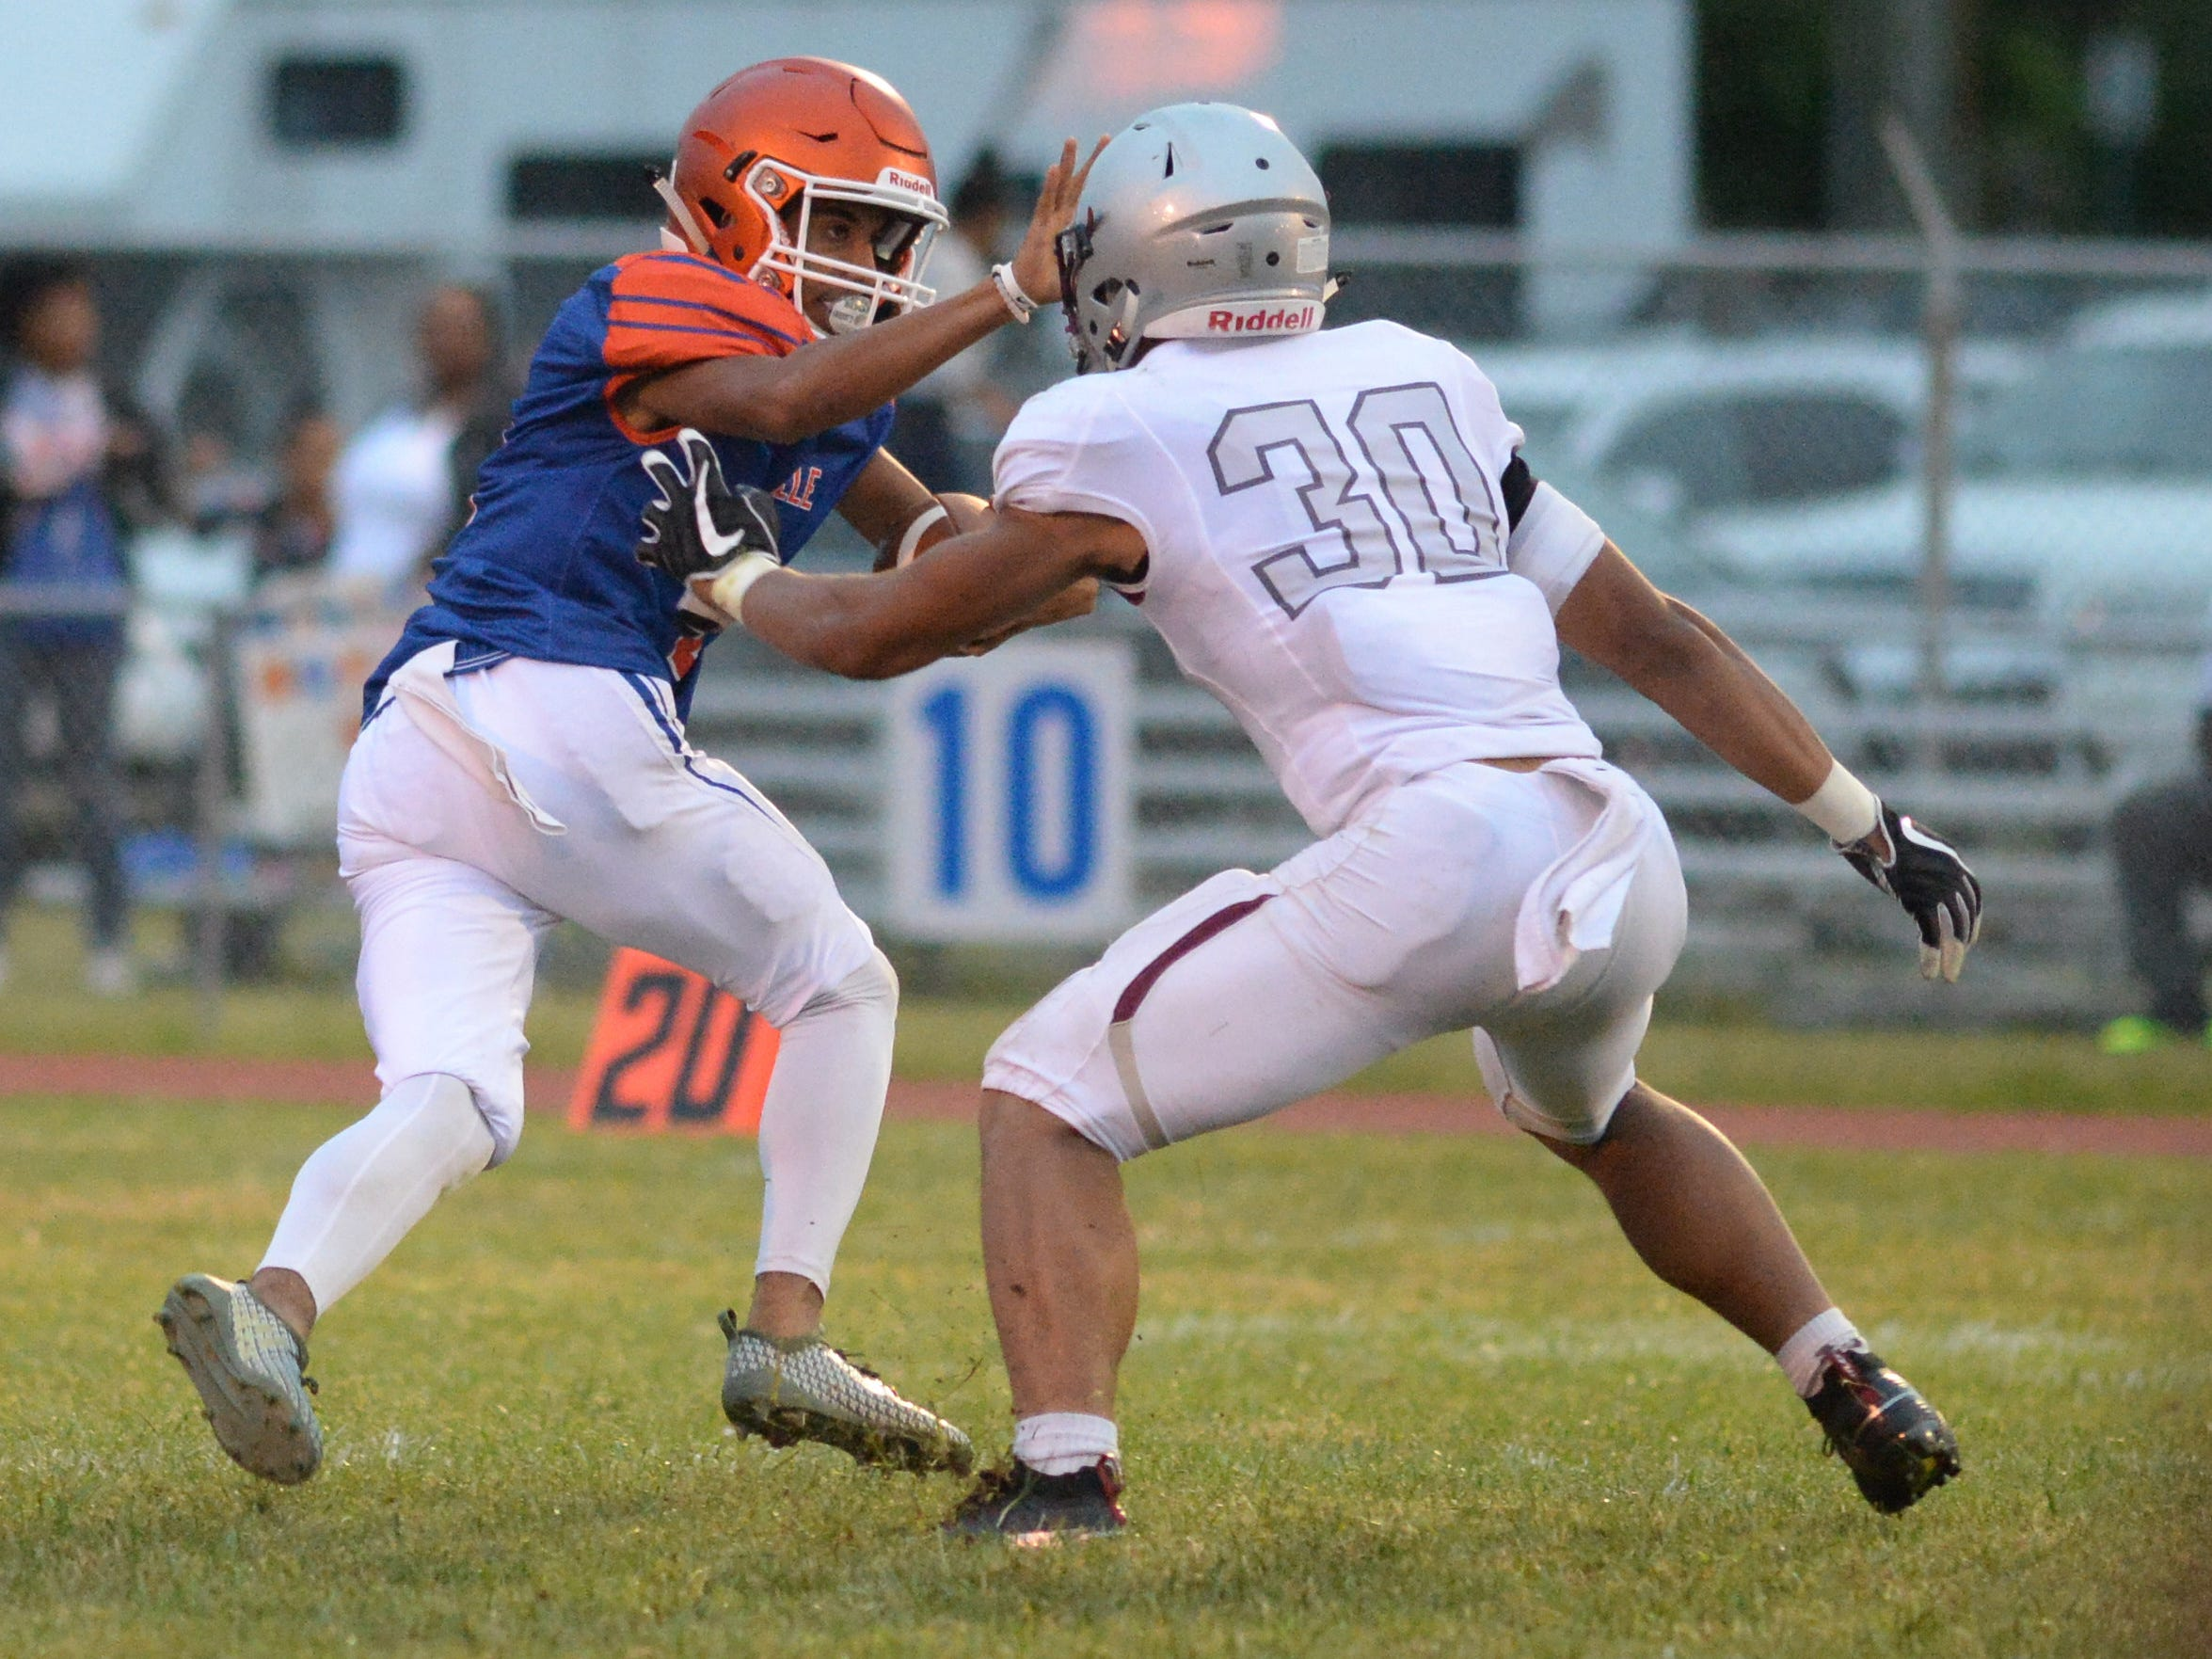 Millville's Eddie Jamison pushes off St. Peter's Prep's Cody Simon as he carries the ball during the season opening football game at Millville Memorial High School, Friday, Aug. 31, 2018.